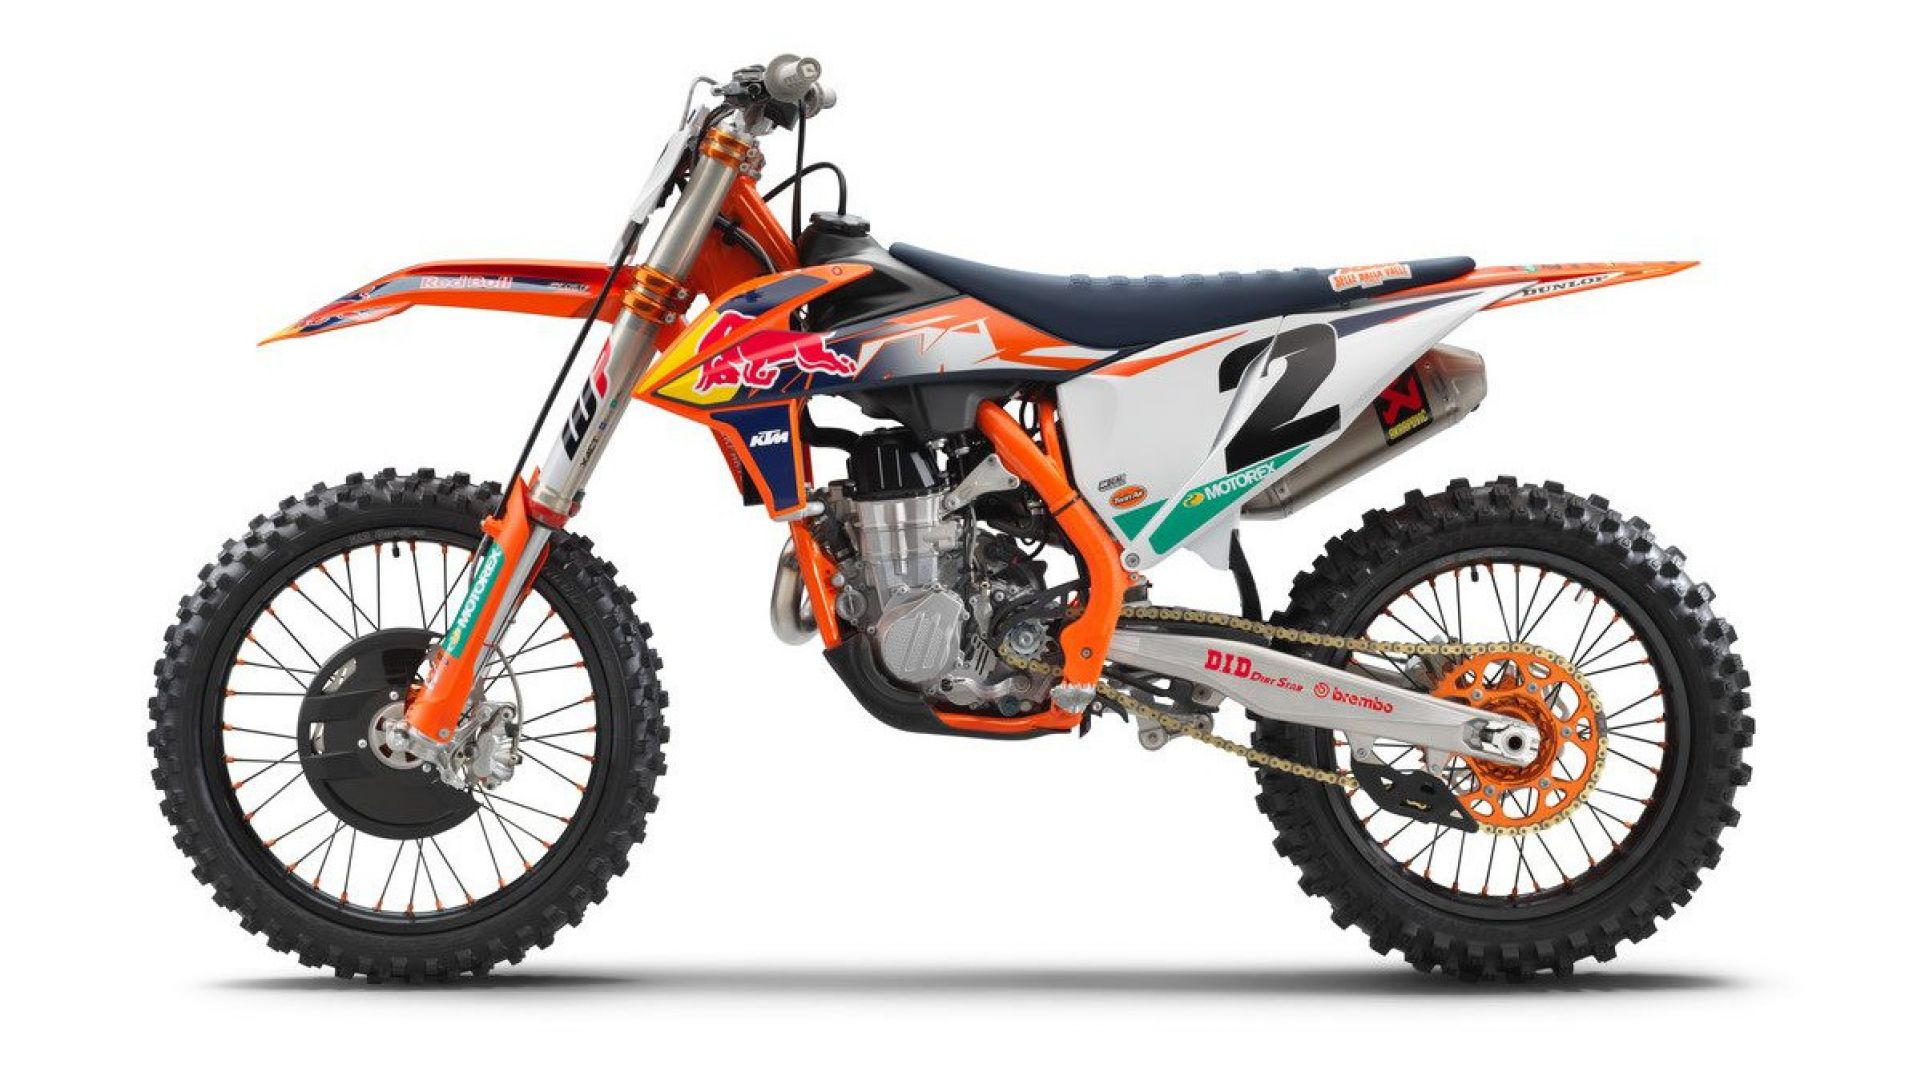 The 2021 KTM 450 SX-F Factory Edition will be available at